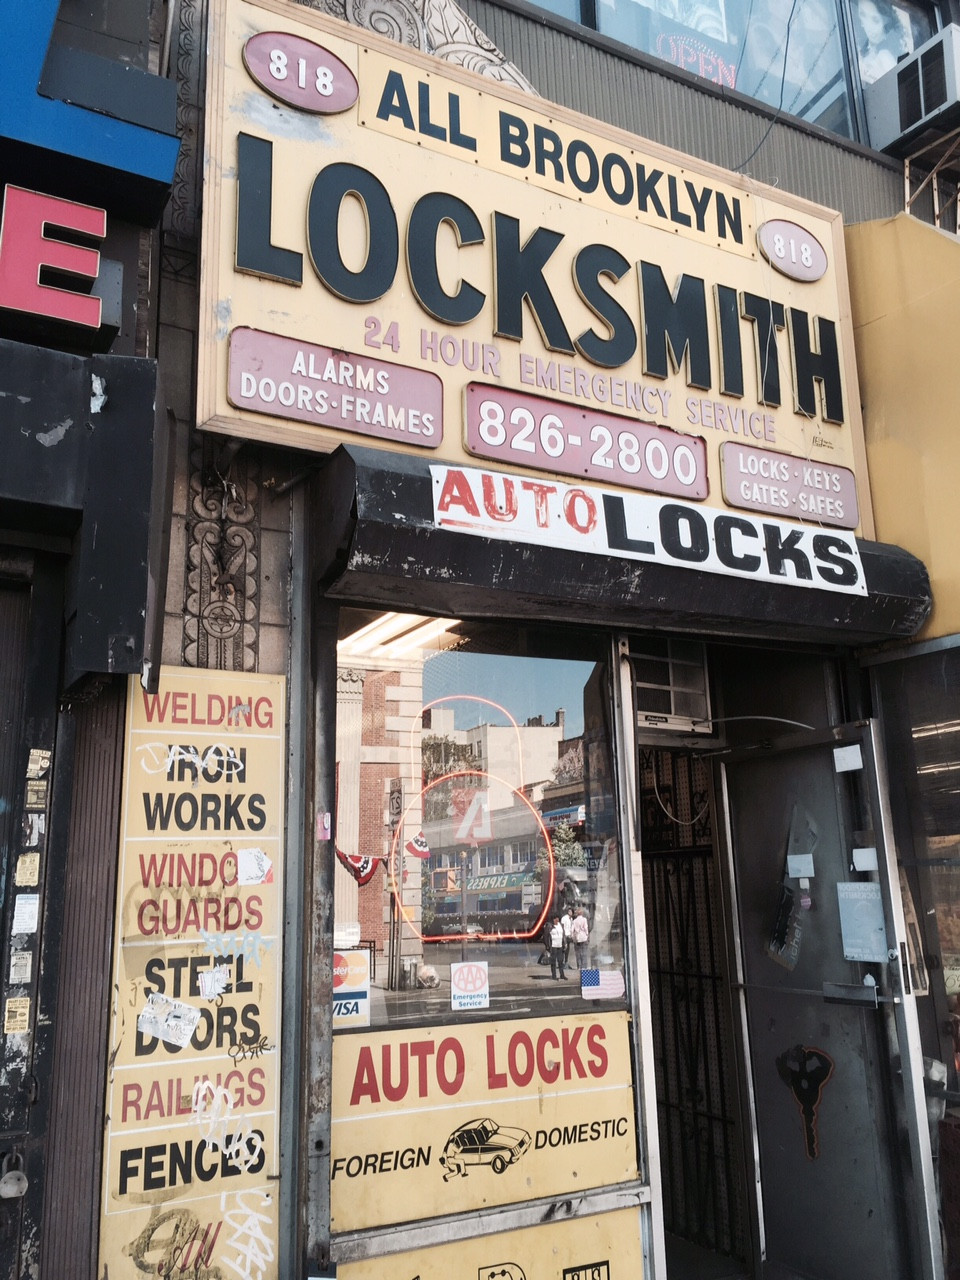 Aaa Authorized 247 Locksmith  All Brooklyn Locksmith. Consolidation Loans For Fair Credit. Best Online Colleges For Mba. Heavy Equipment Trade Schools. How To Forward Calls From Landline. Automobile Insurance Terms Wwe Stock Dividend. Federal Disability Attorney Truck Fleet Gps. Account Manager Program Bee Caves Urgent Care. Medical Record Administrator Find Car Loan